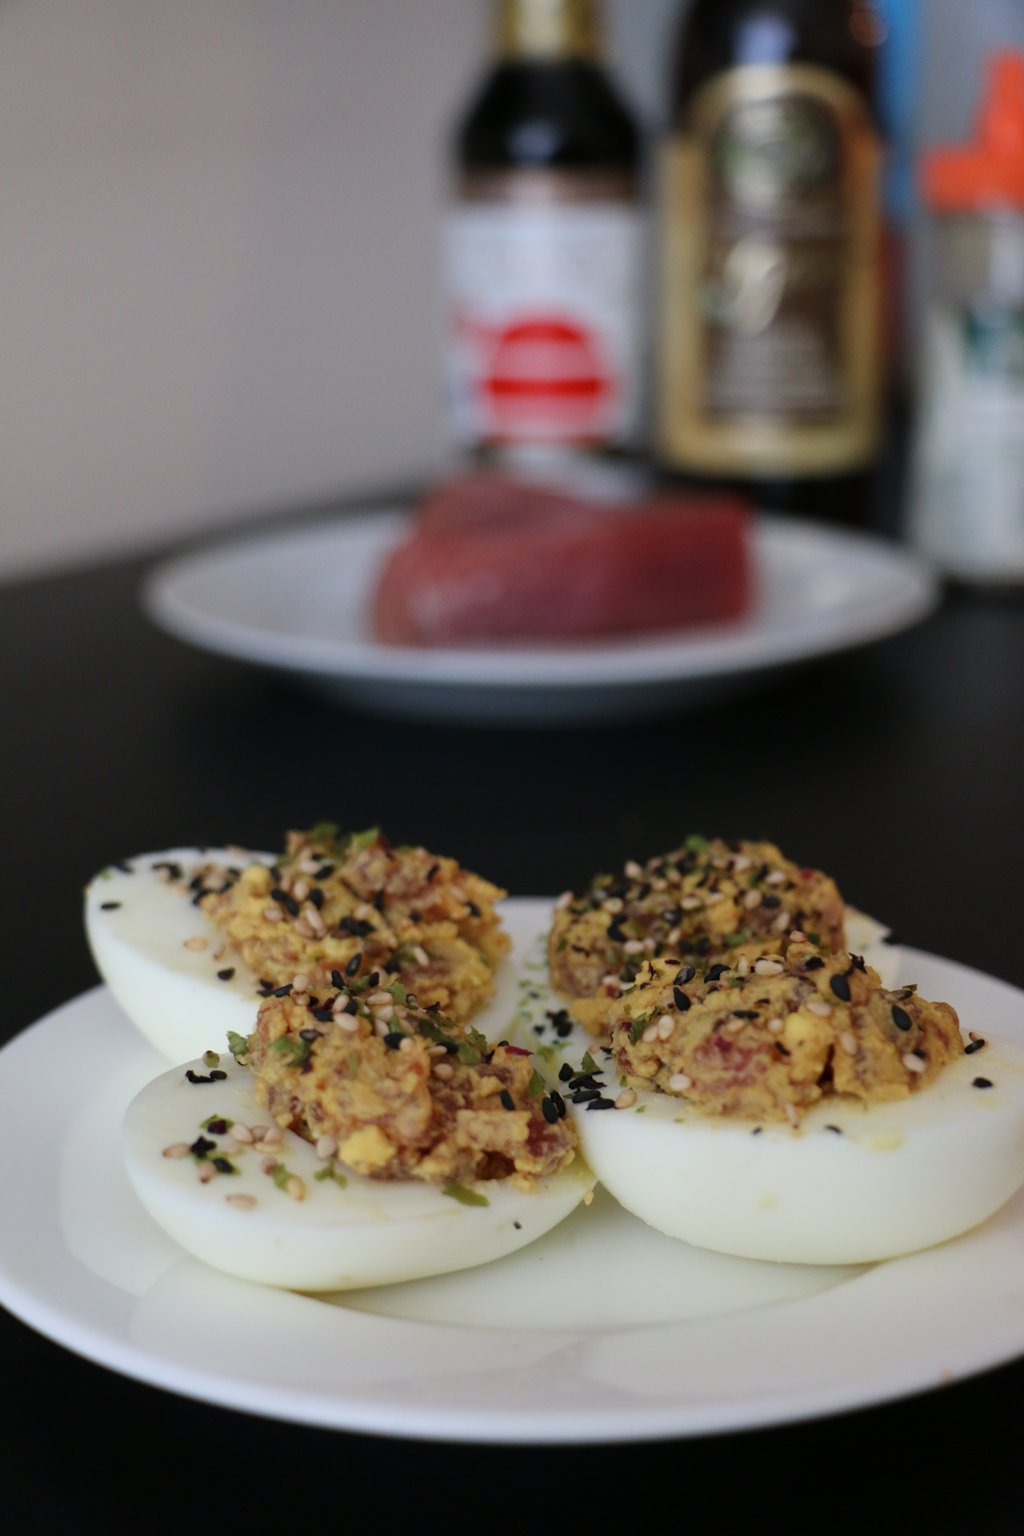 Spicy Tuna Deviled Eggs (4 Halves)